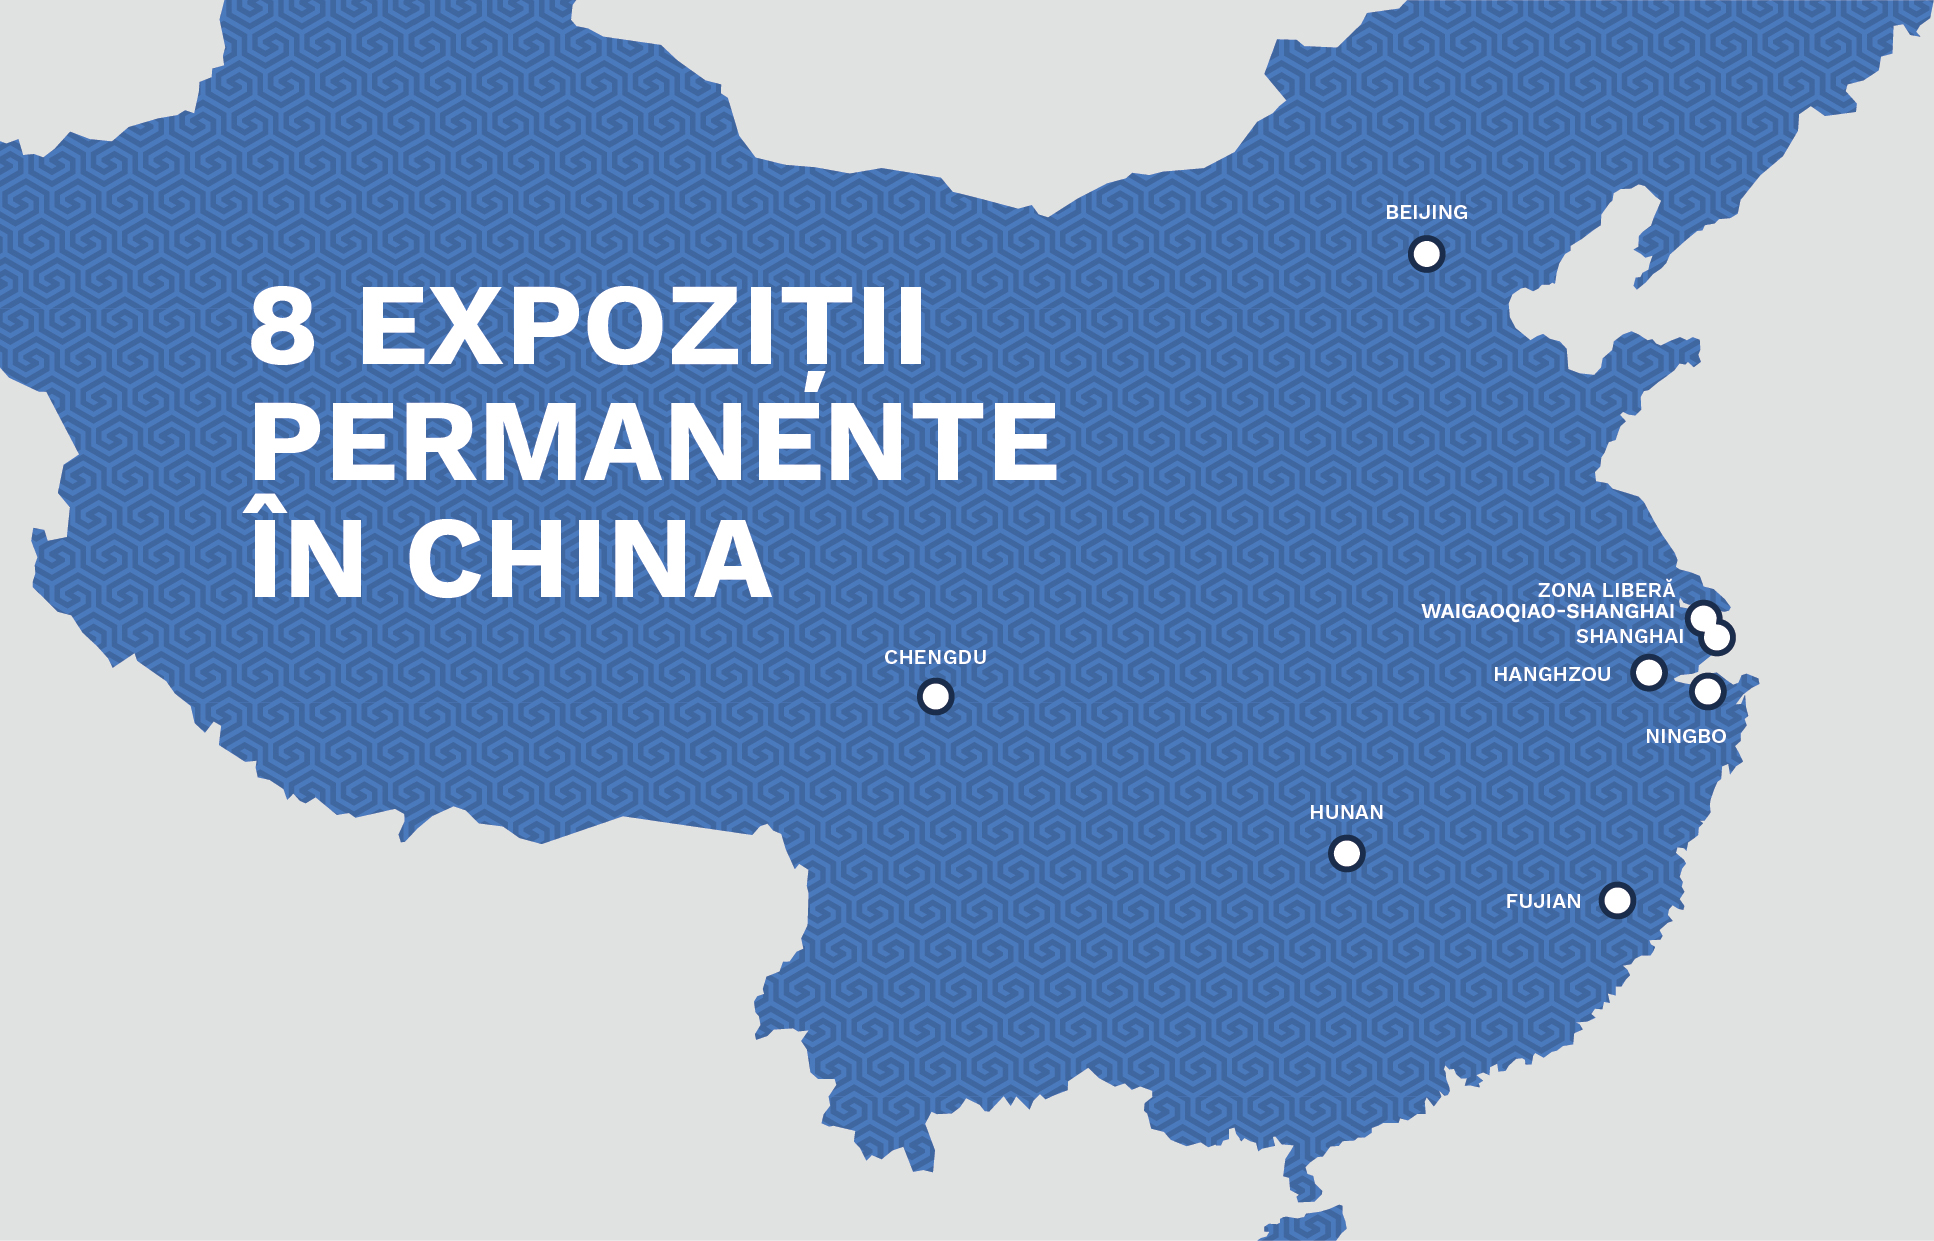 sbtc-smooth-business-to-china_expozitii-permanente-21